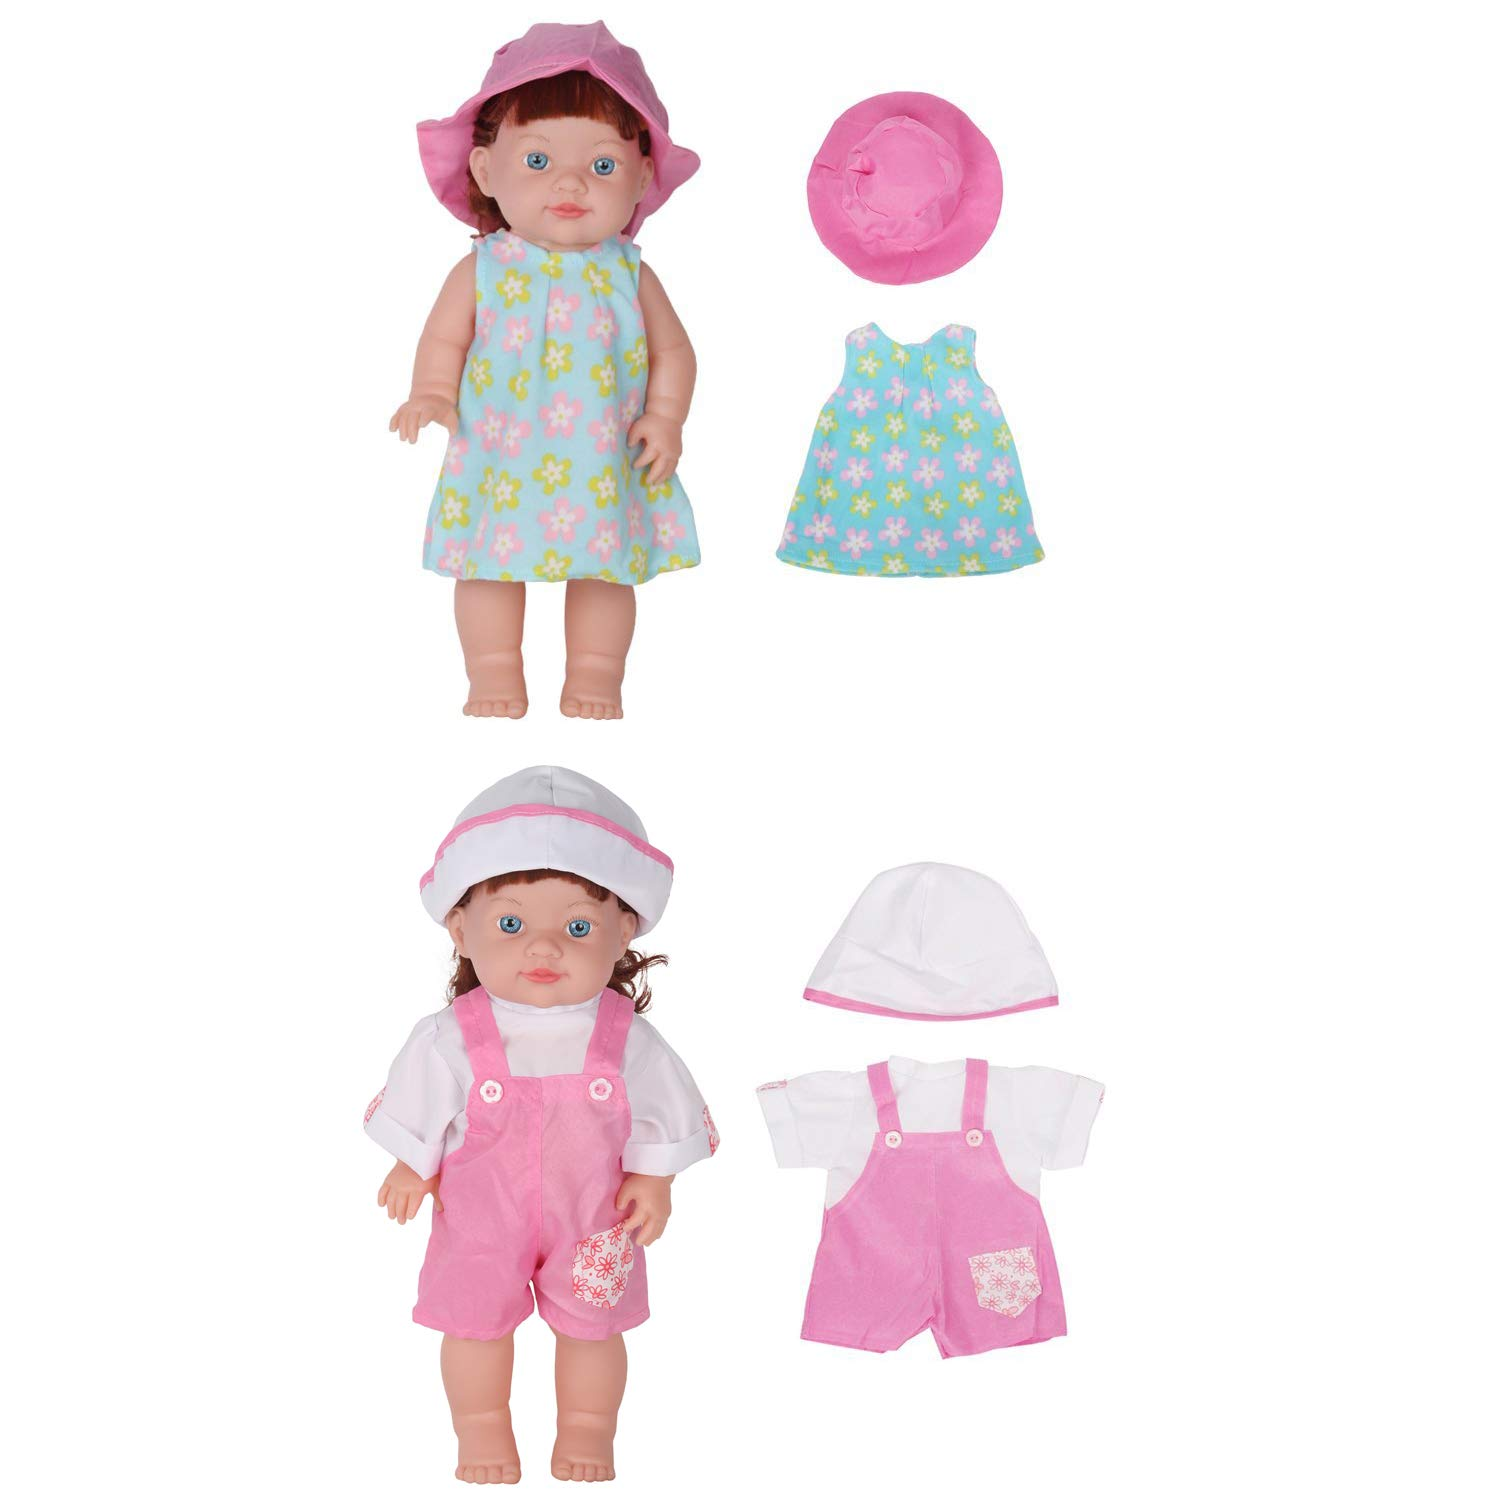 30262cecacf83 Huang Cheng Toys Set of 12 Handmade Lovely Baby Doll Clothes Dress Outfits  Costumes For 14-15-16 Inch Dolly Pretty Doll Cloth Hat Cap Umbrella Mirror  Comb ...